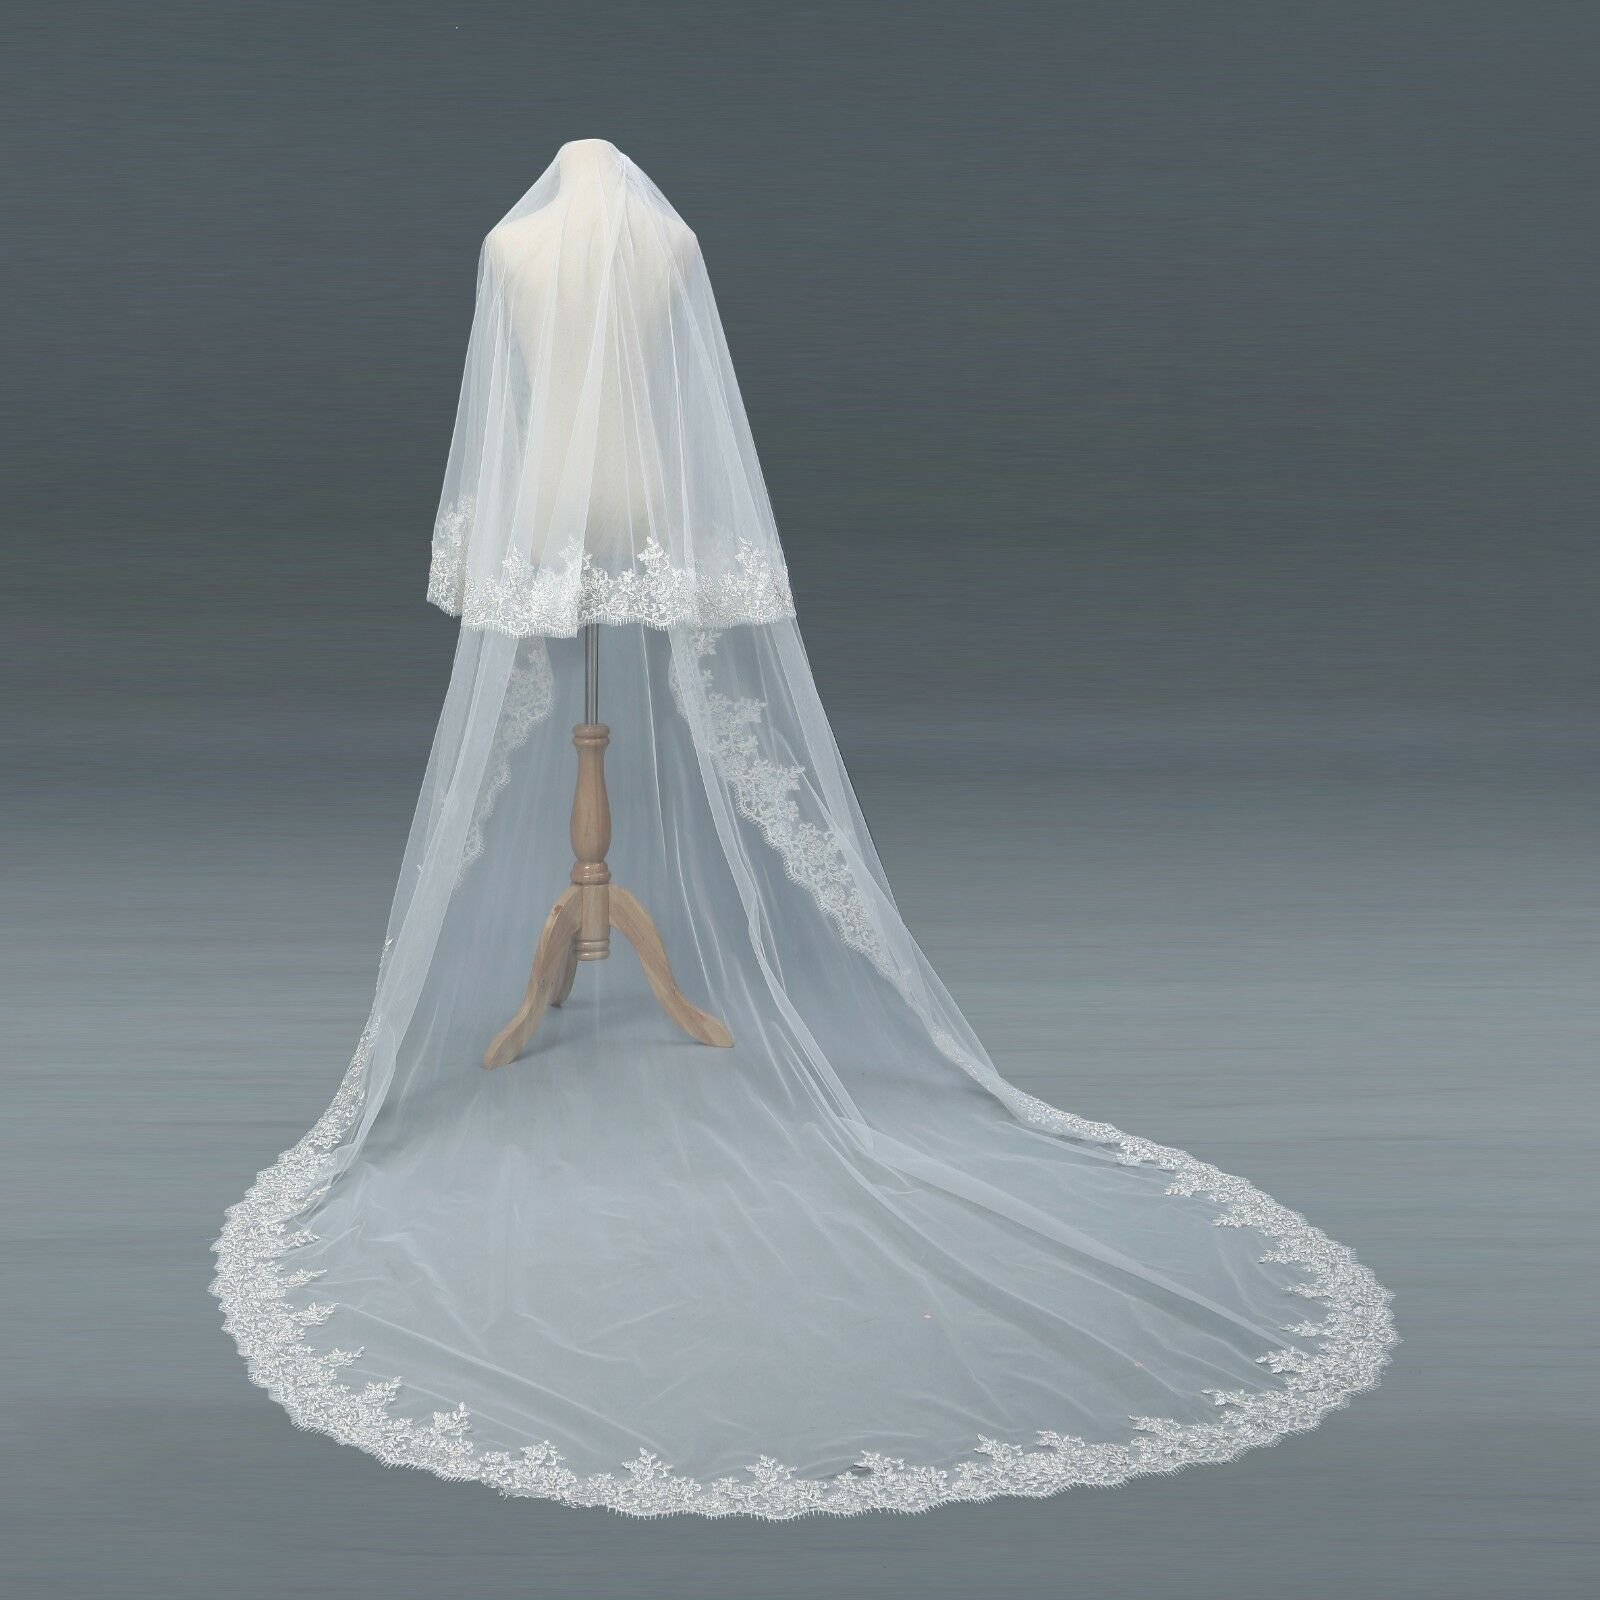 Lace Edge Wedding Bridal Veils 2 Layer Cathedral Long Length Women mantilla wedding vail With Comb NEW